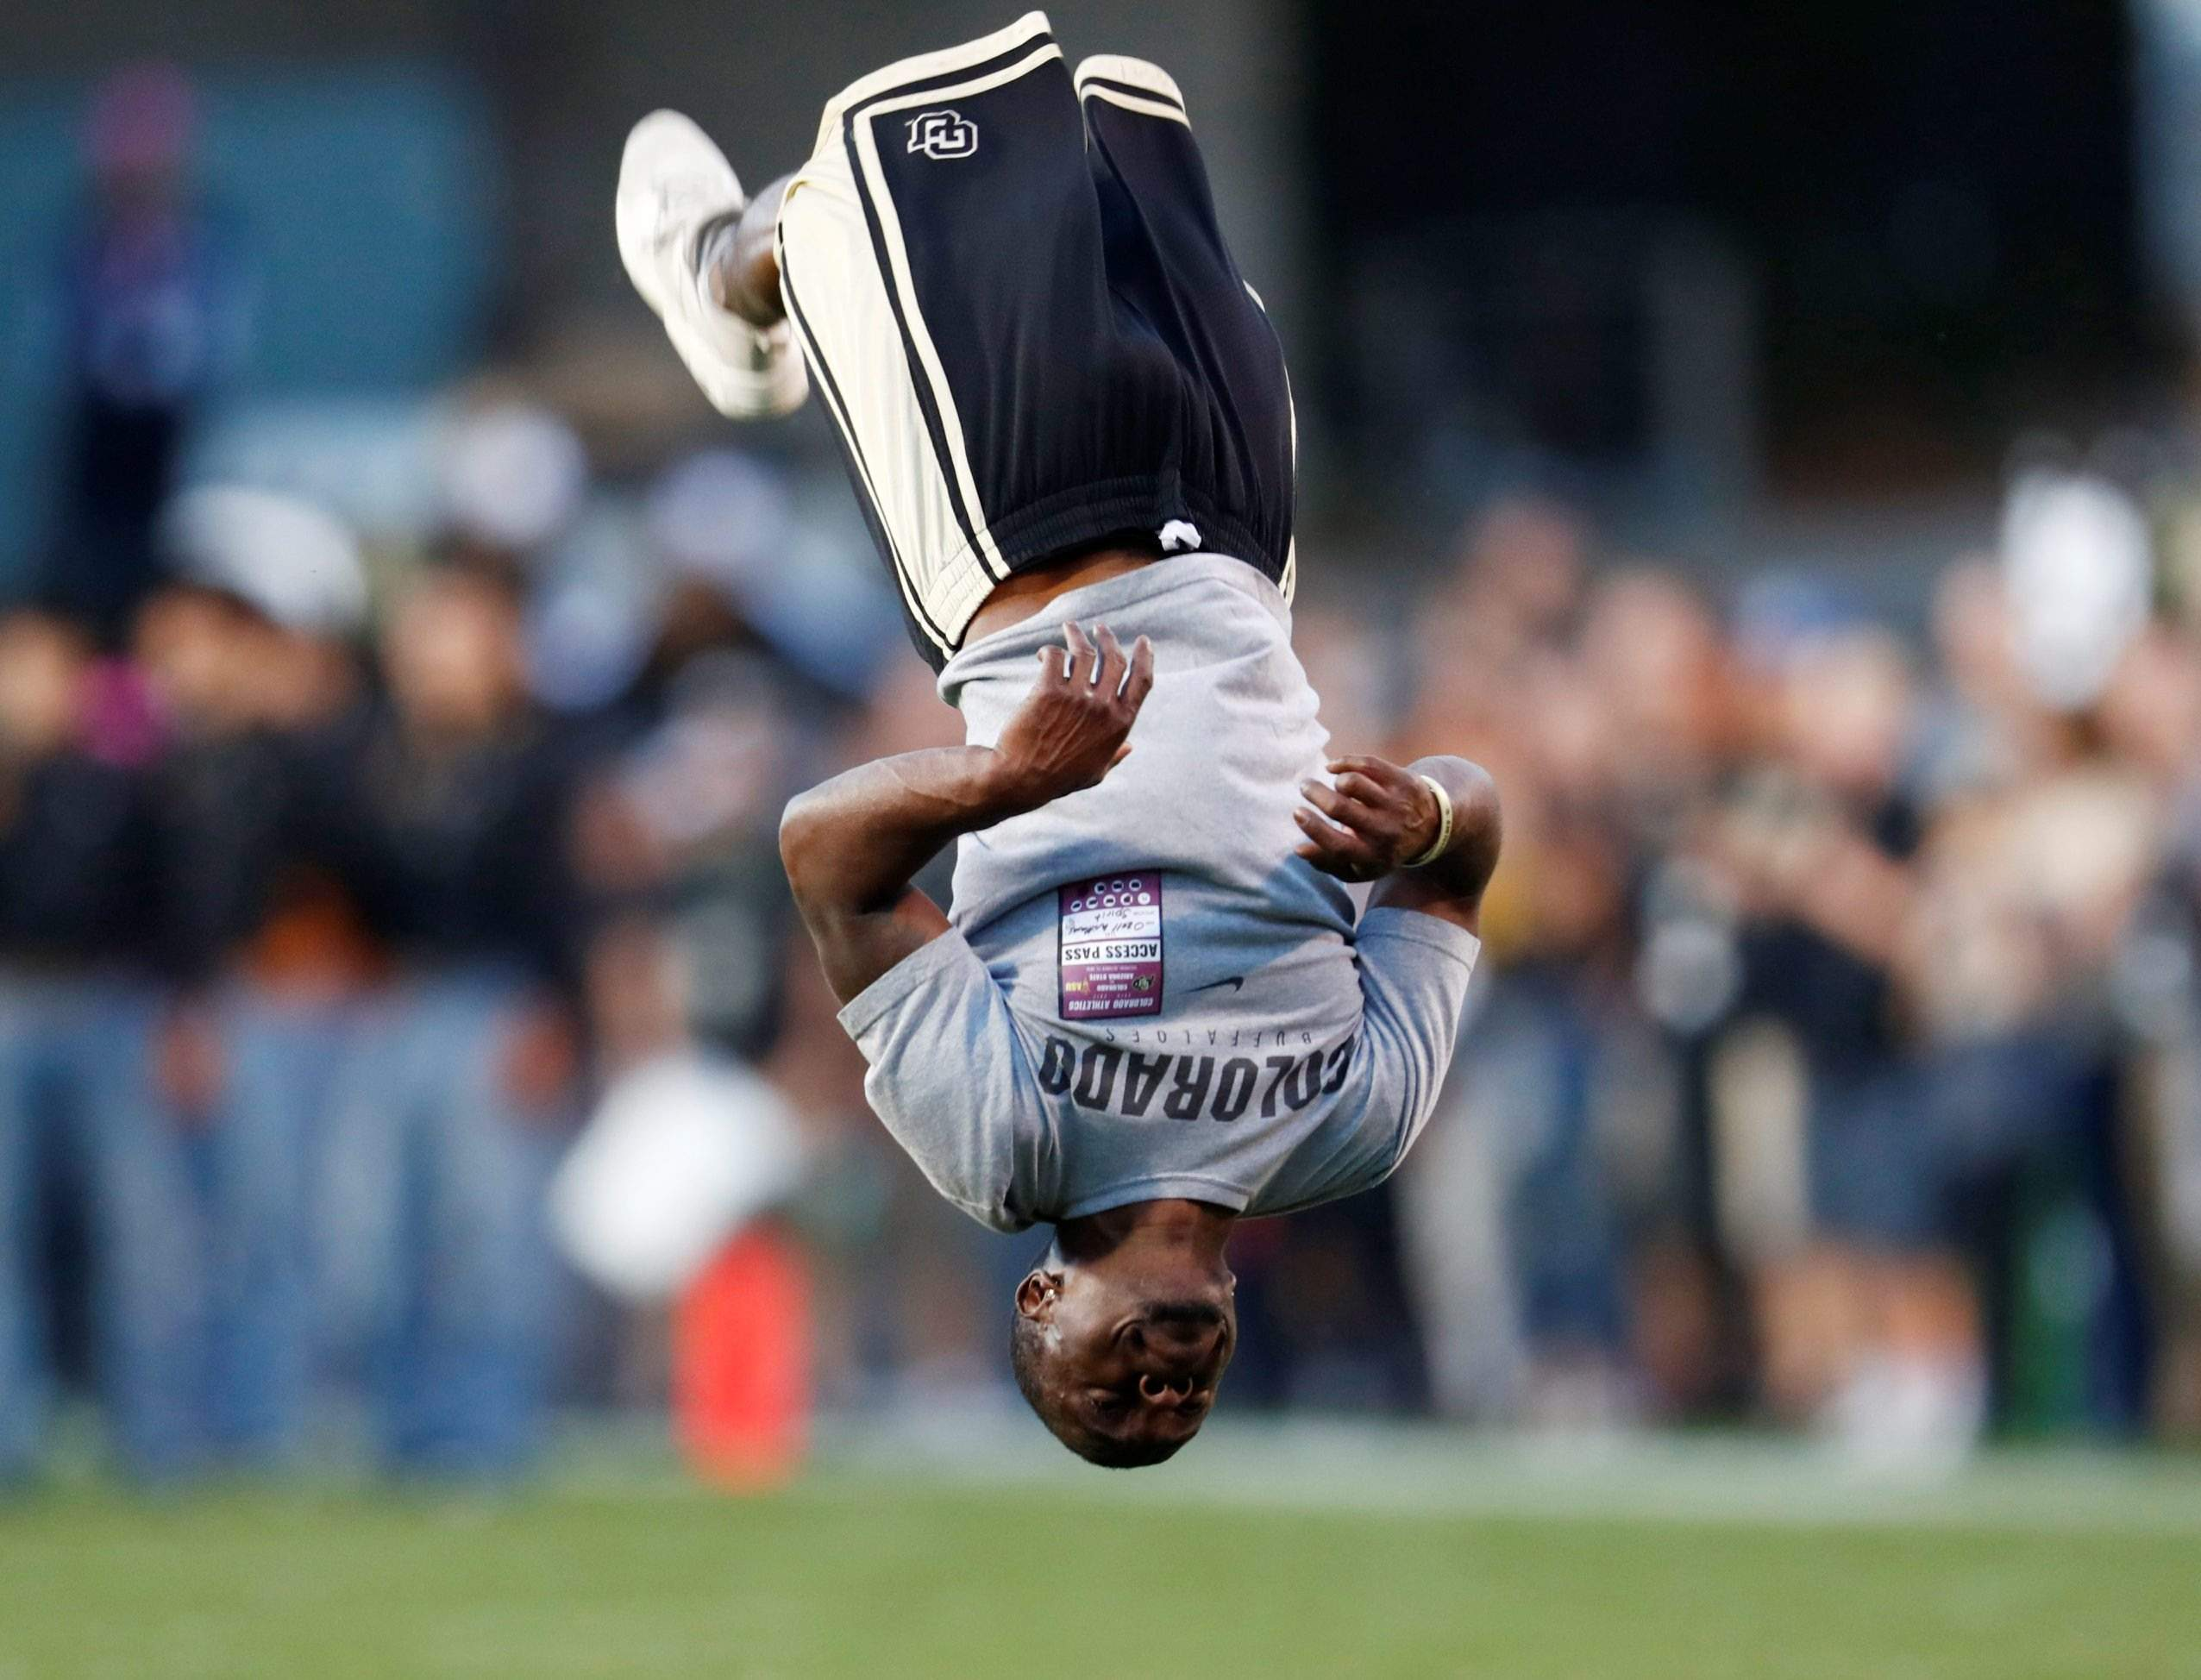 Ozell Williams performs a somersault as part of pre-game ceremonies before  Colorado hosts Arizona State in the first half of an NCAA college football  game ...